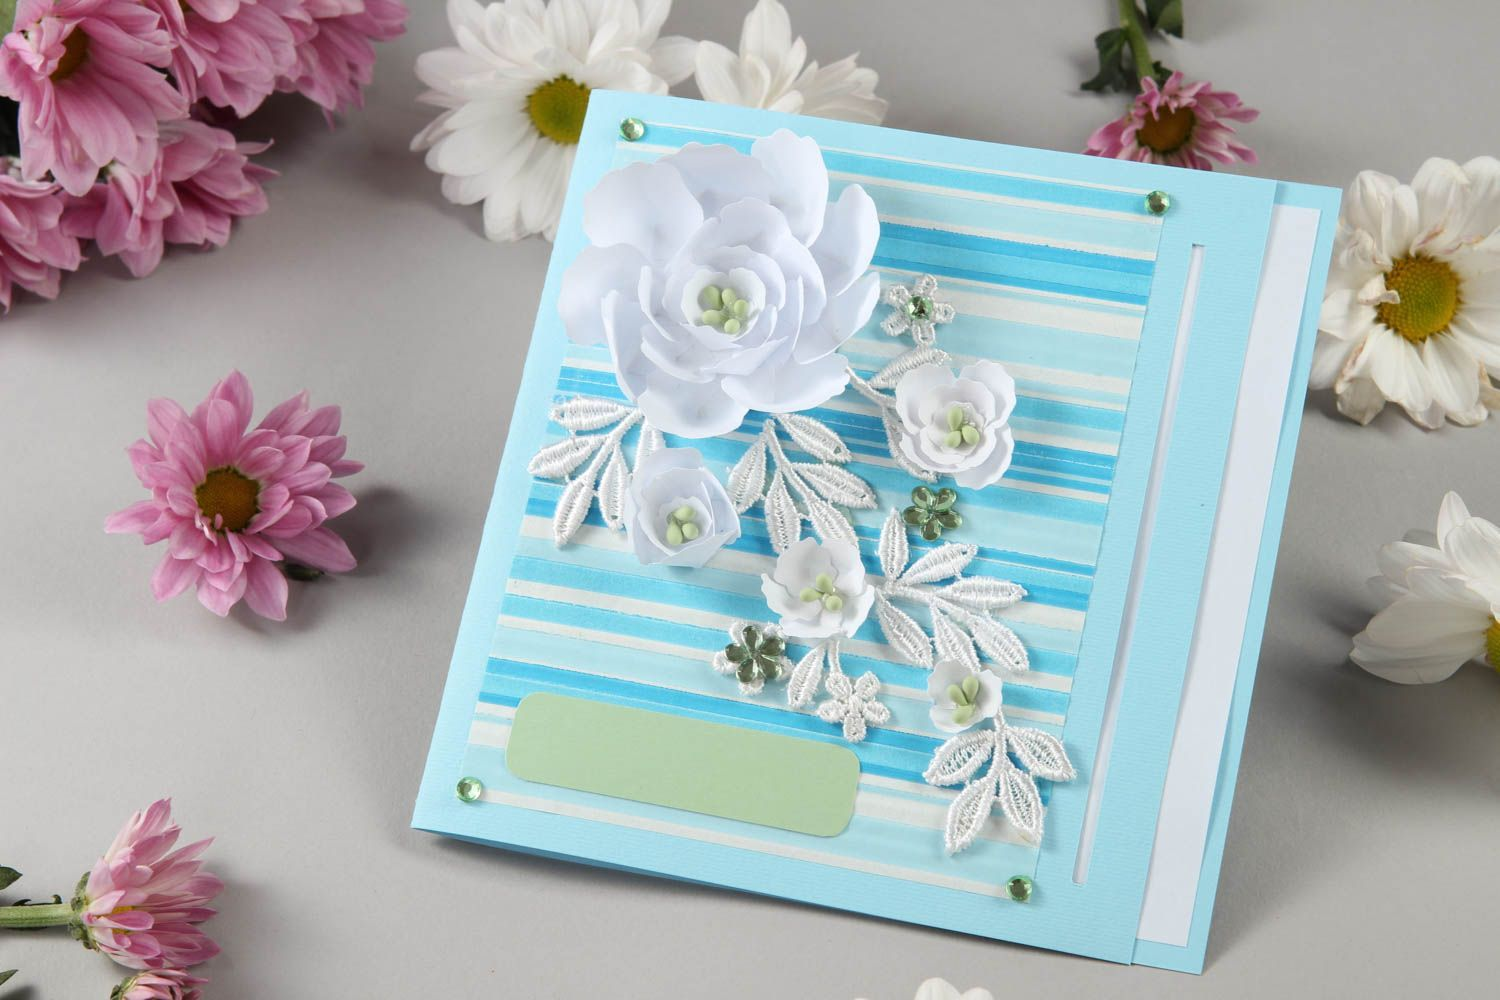 images of handmade greeting cards for birthday ; 022_128